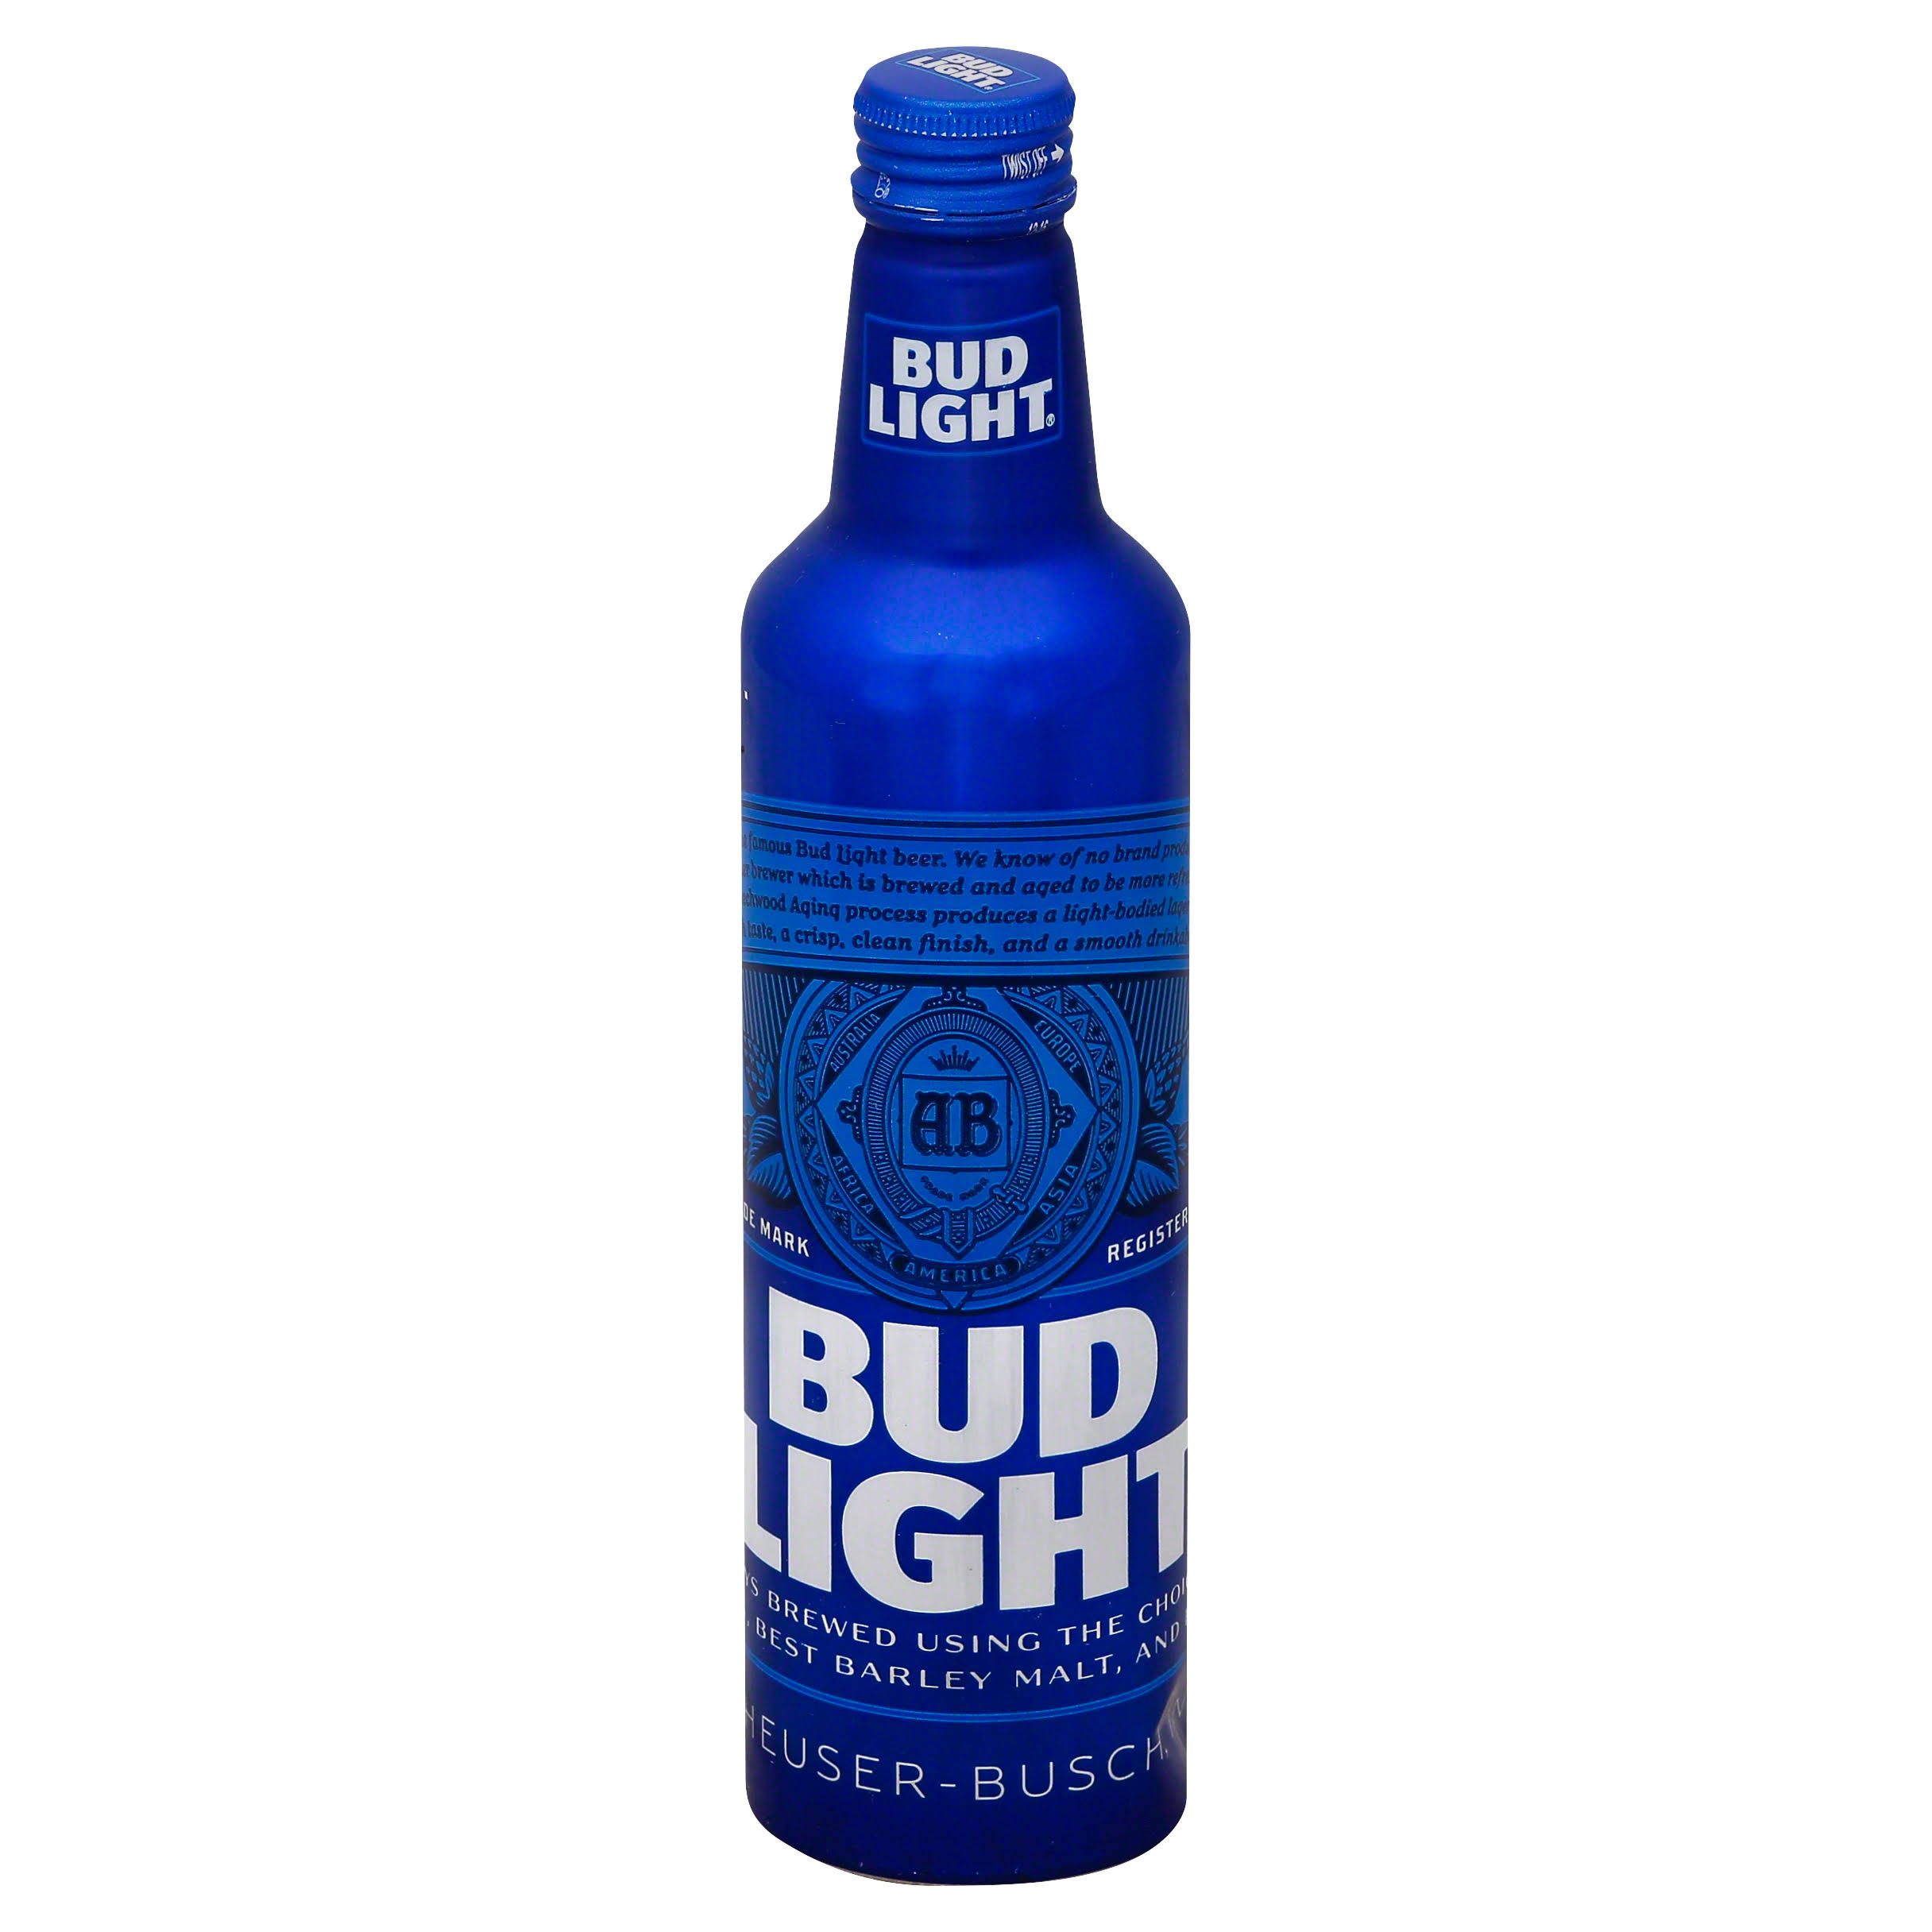 Bud Light Beer - Aluminum Bottle, 16 fl. oz